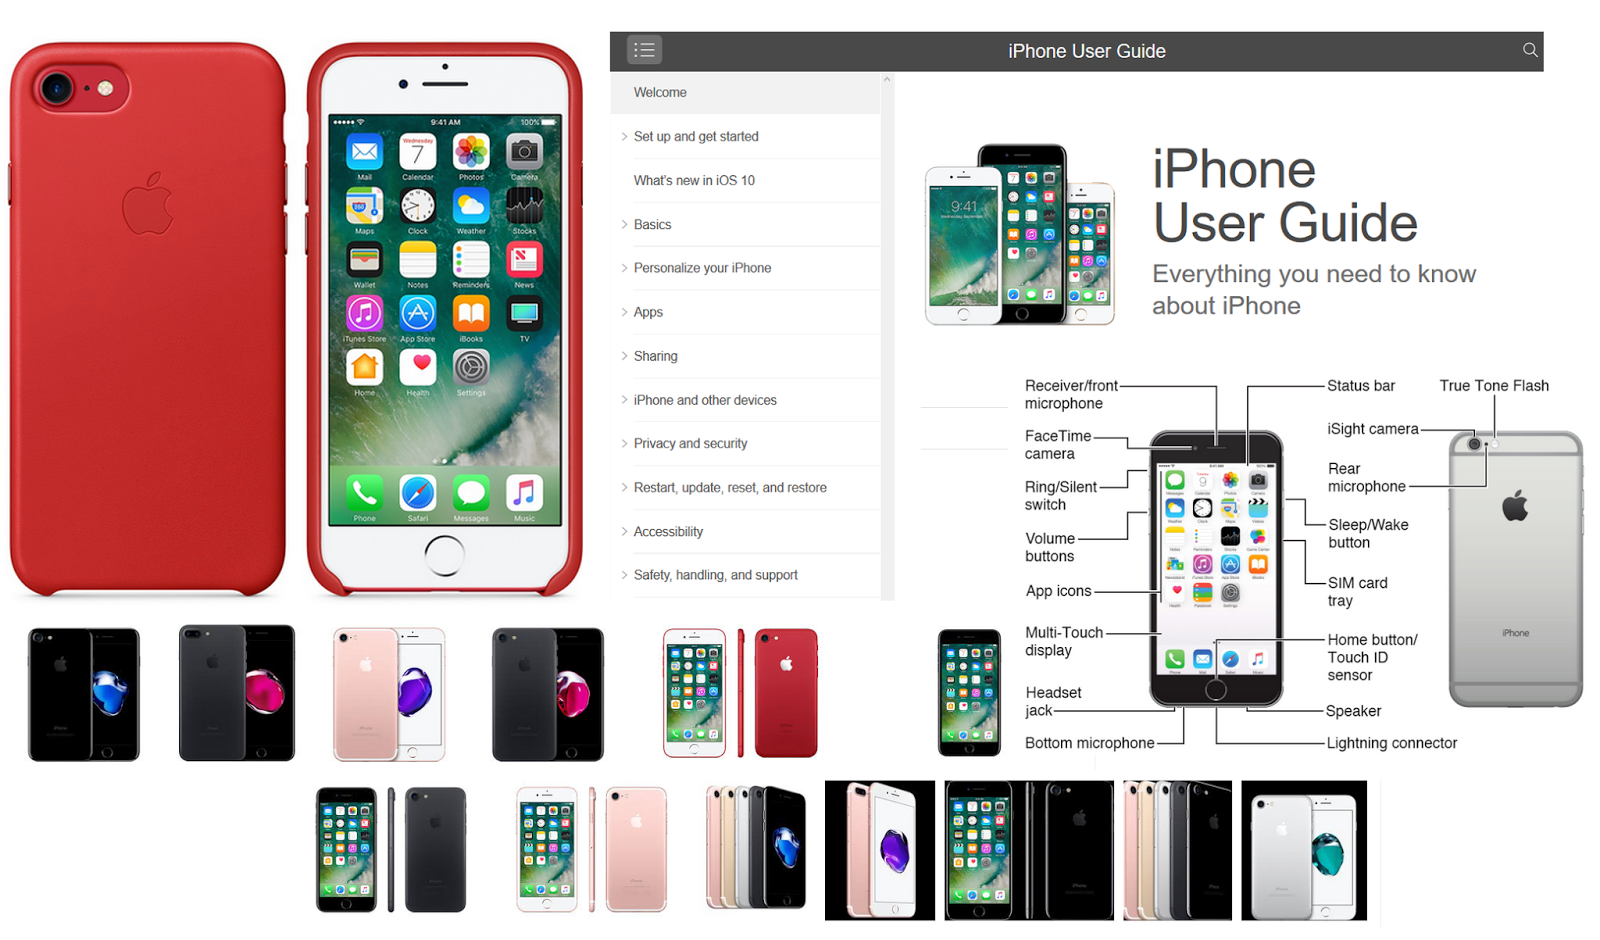 iPhone 7 Manual PDF With Tutorial And iPhone 7 Plus User Guide